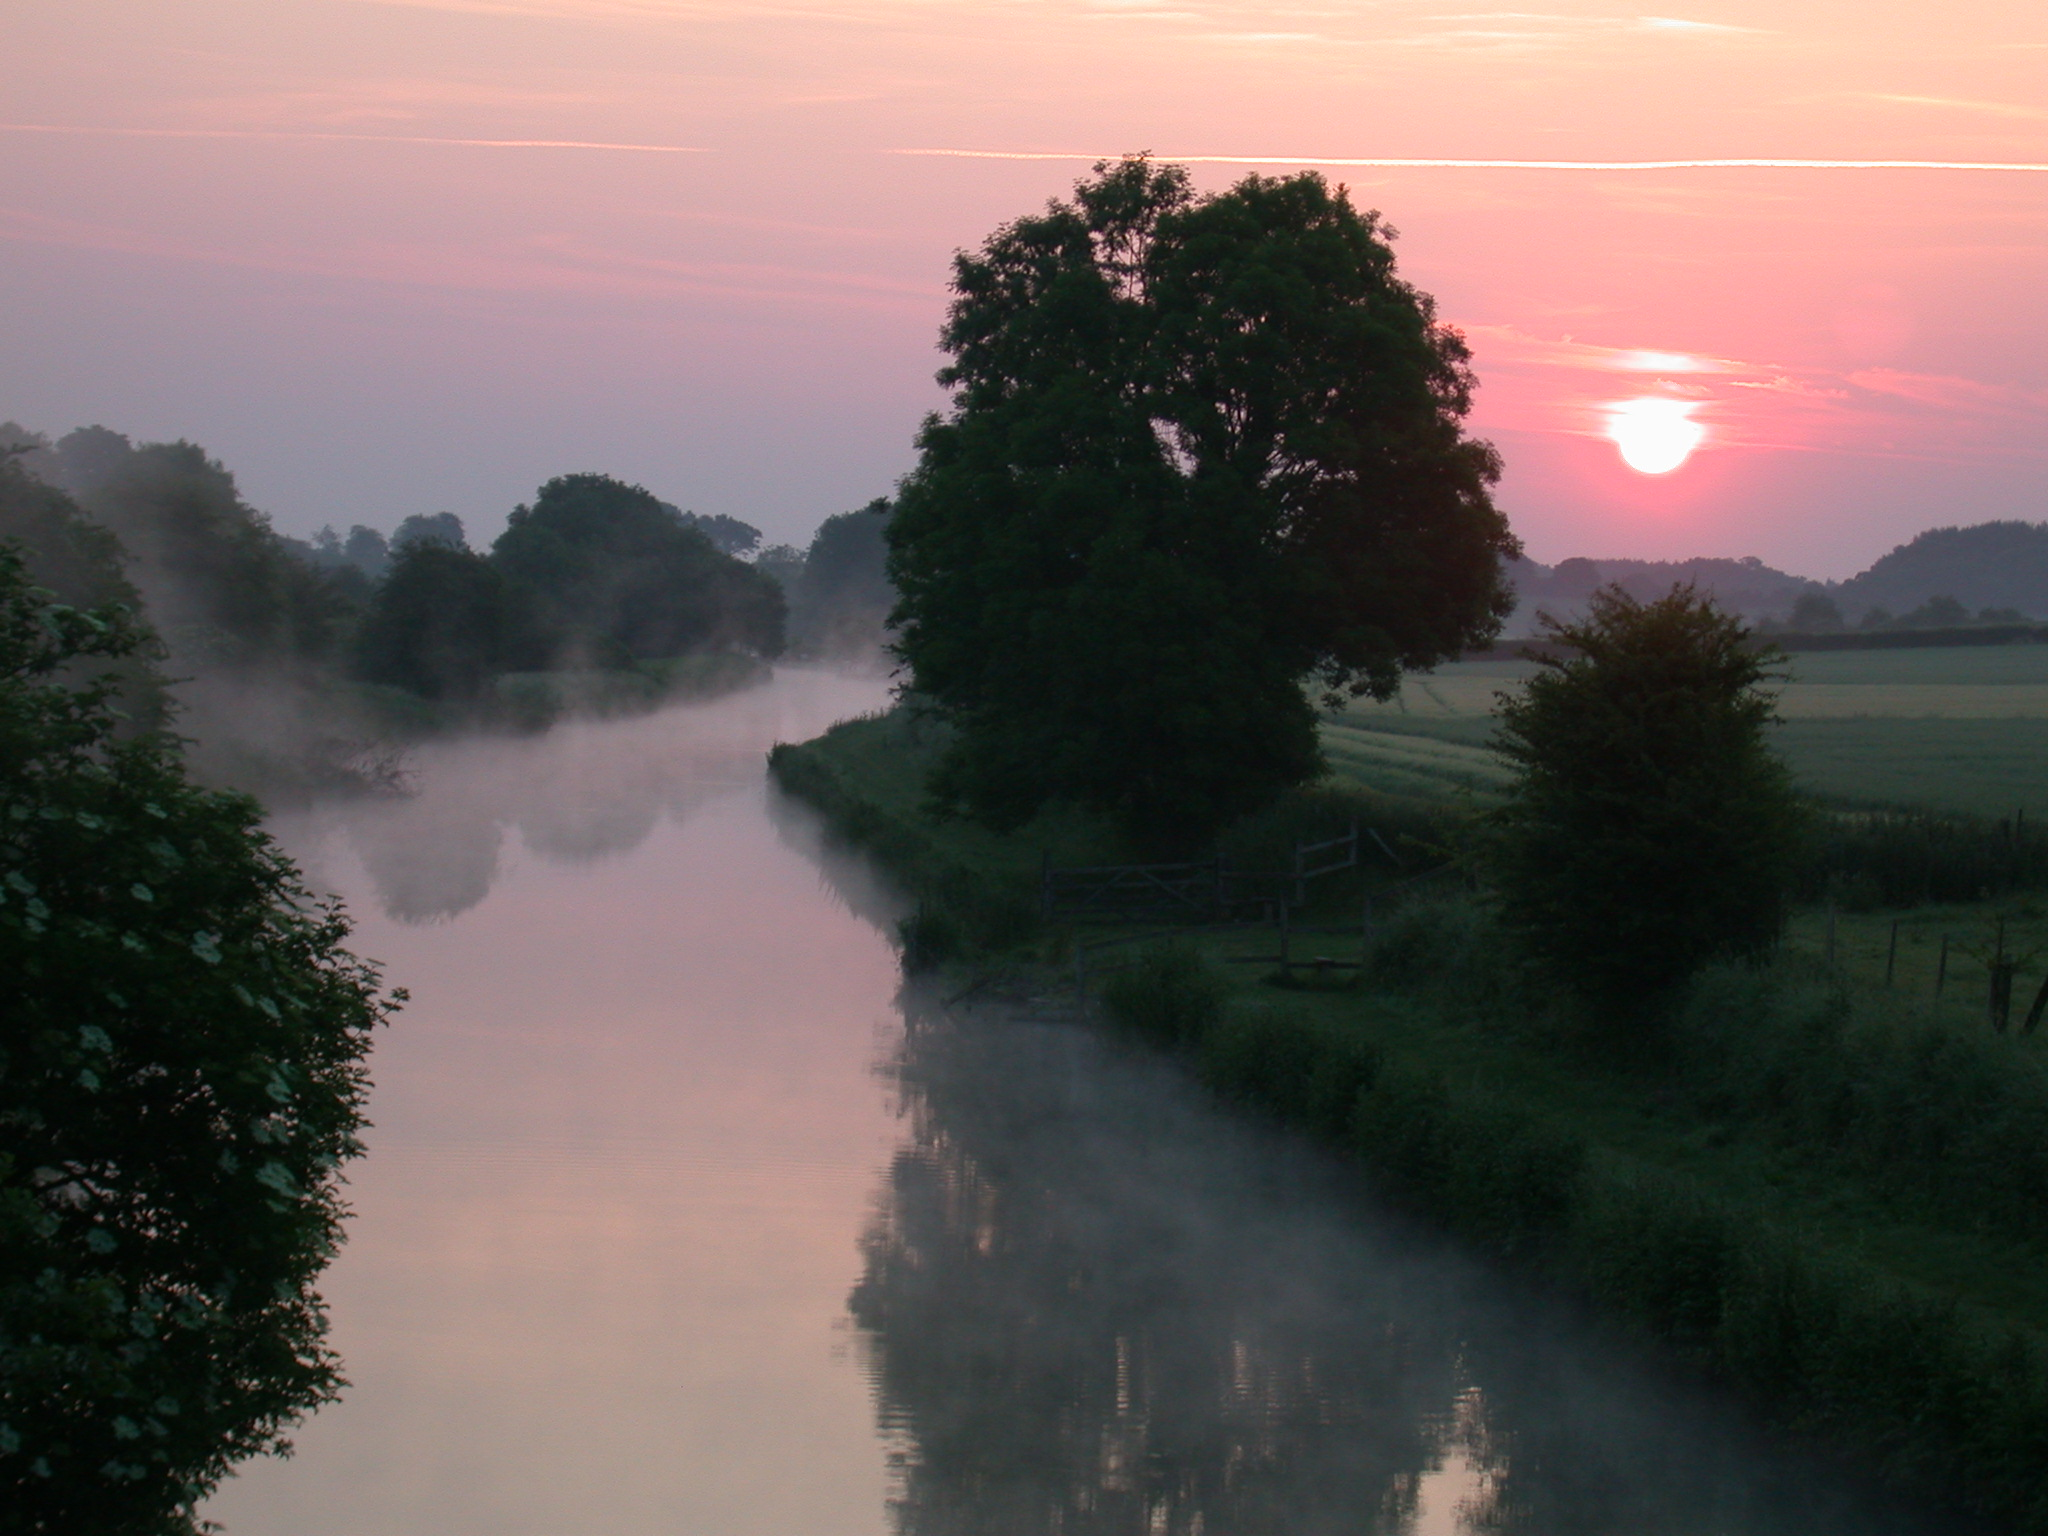 FILMS MADE ON THE CANALS…take a canal boat holiday and follow in the wake of the stars!